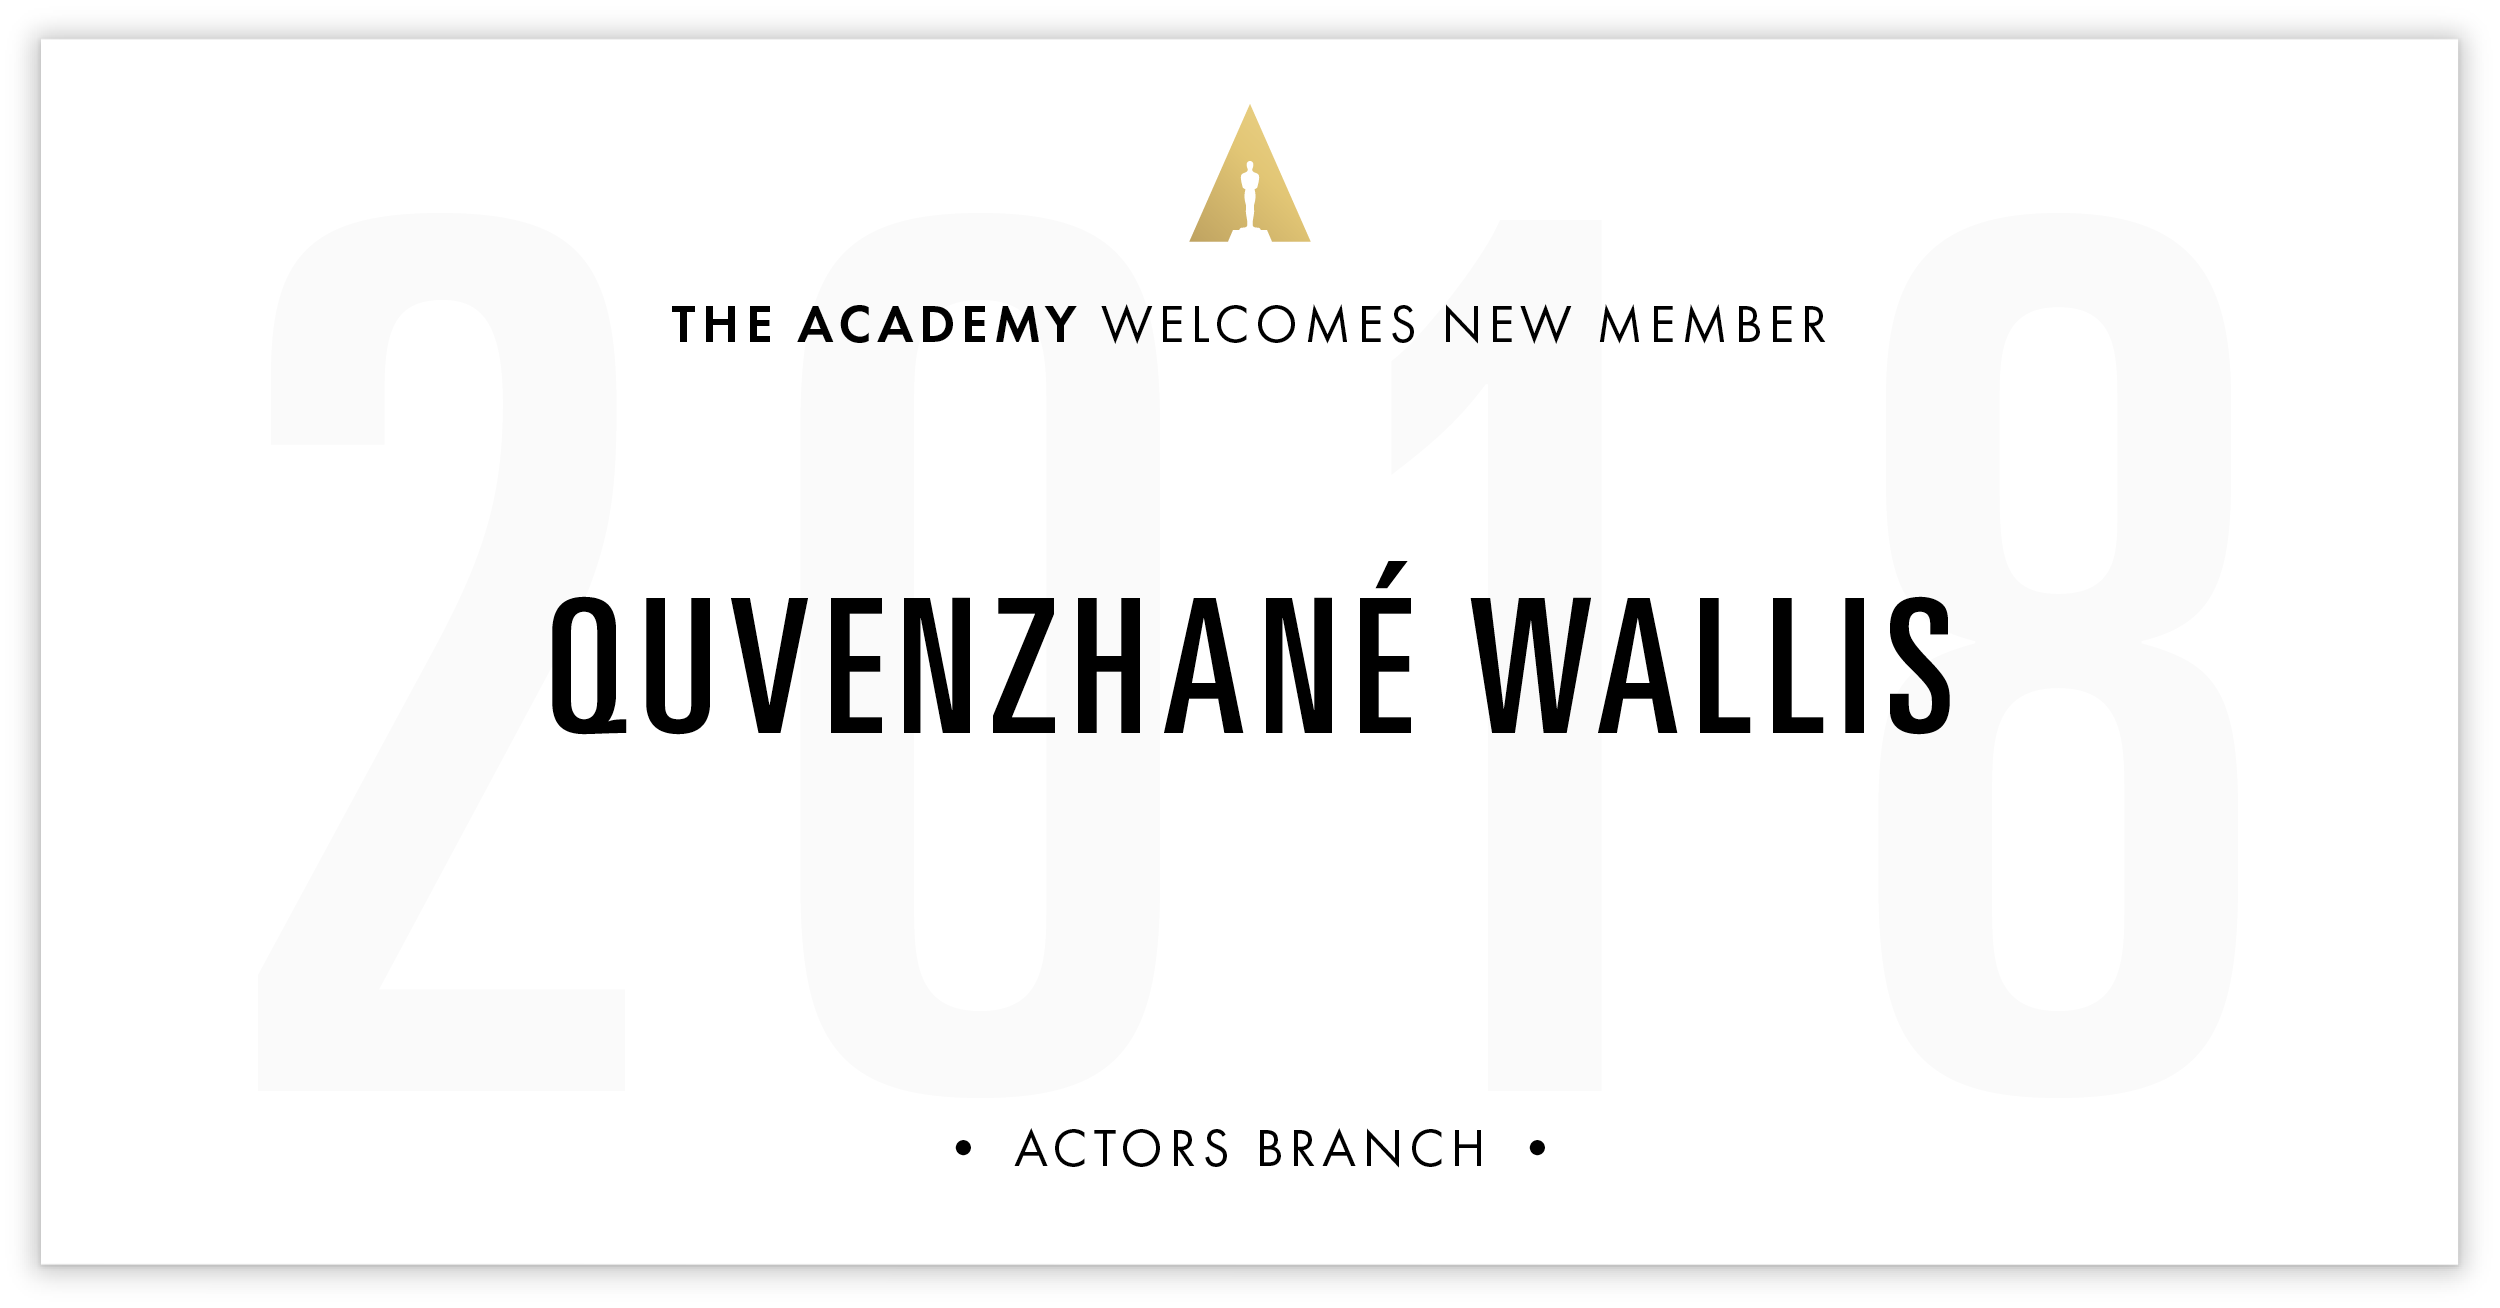 Quvenzhané Wallis is invited!